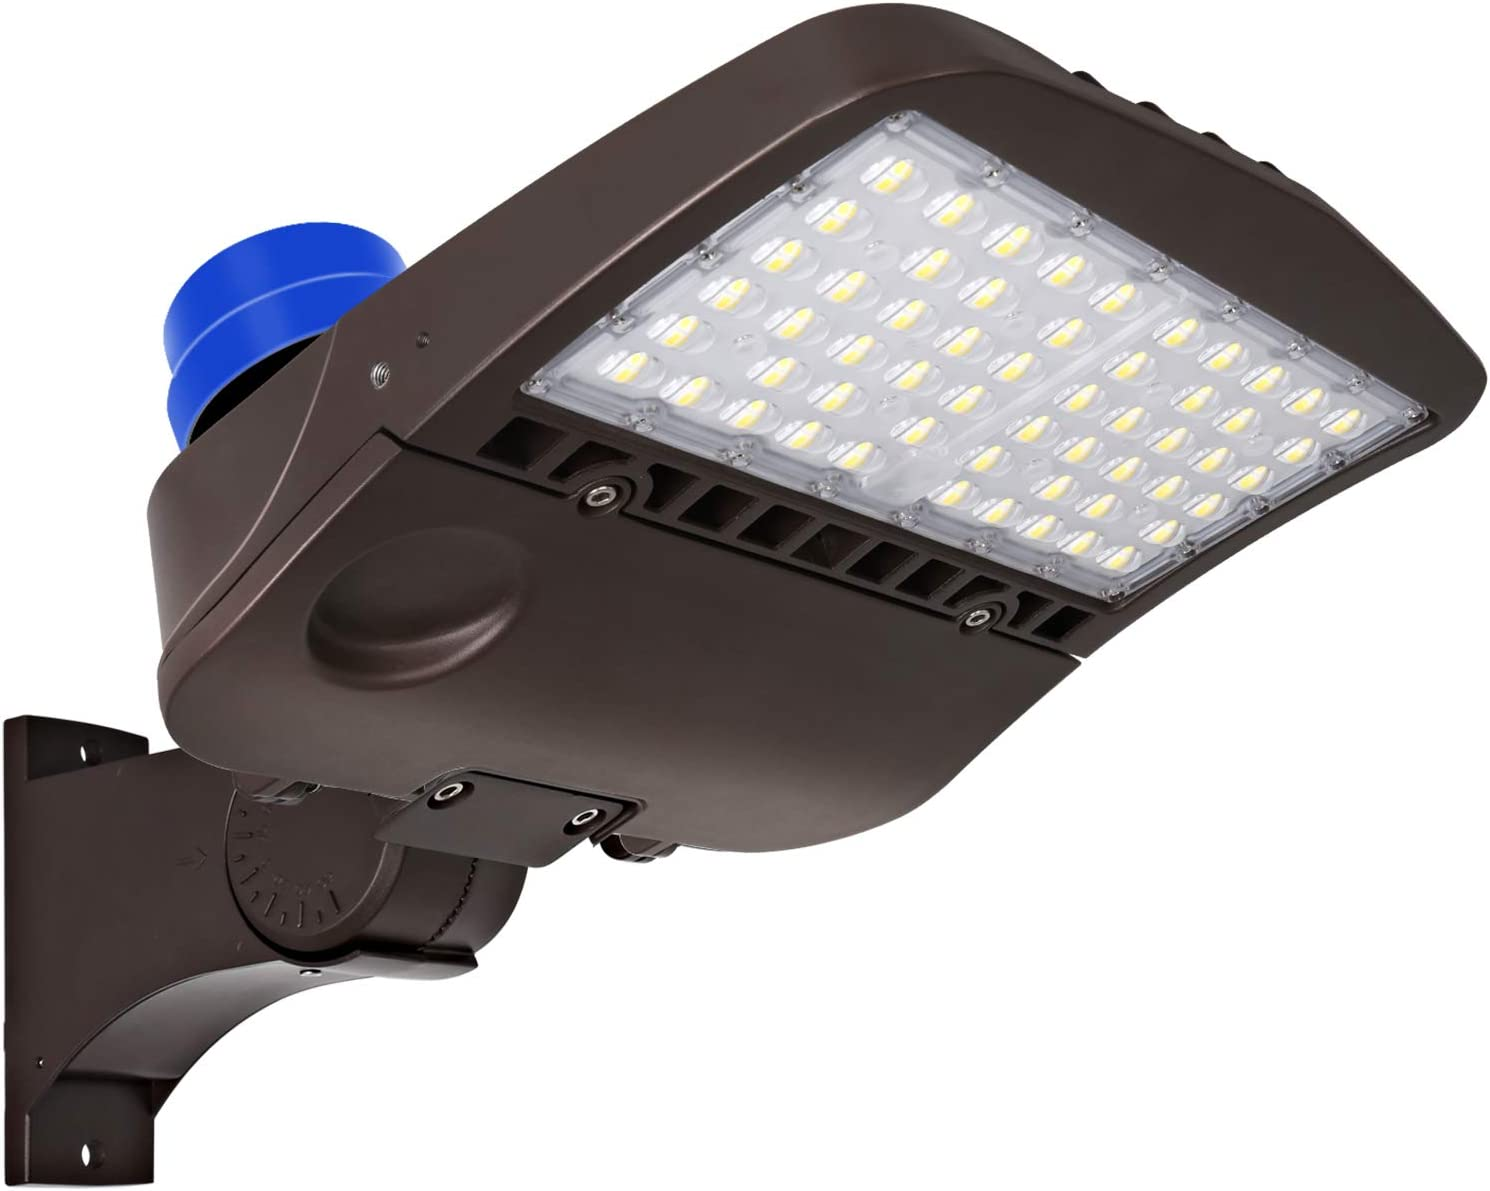 LED Parking Lot Lighting with Photocell, 200W 27, 000LM (135LM/W)Dusk to  Dawn LED Parking Lot Lights, 5000K Commercial LED Shoebox Area Lighting,  Waterproof, [750W HPS Equivalent] Arm Mount - - Amazon.comAmazon.com